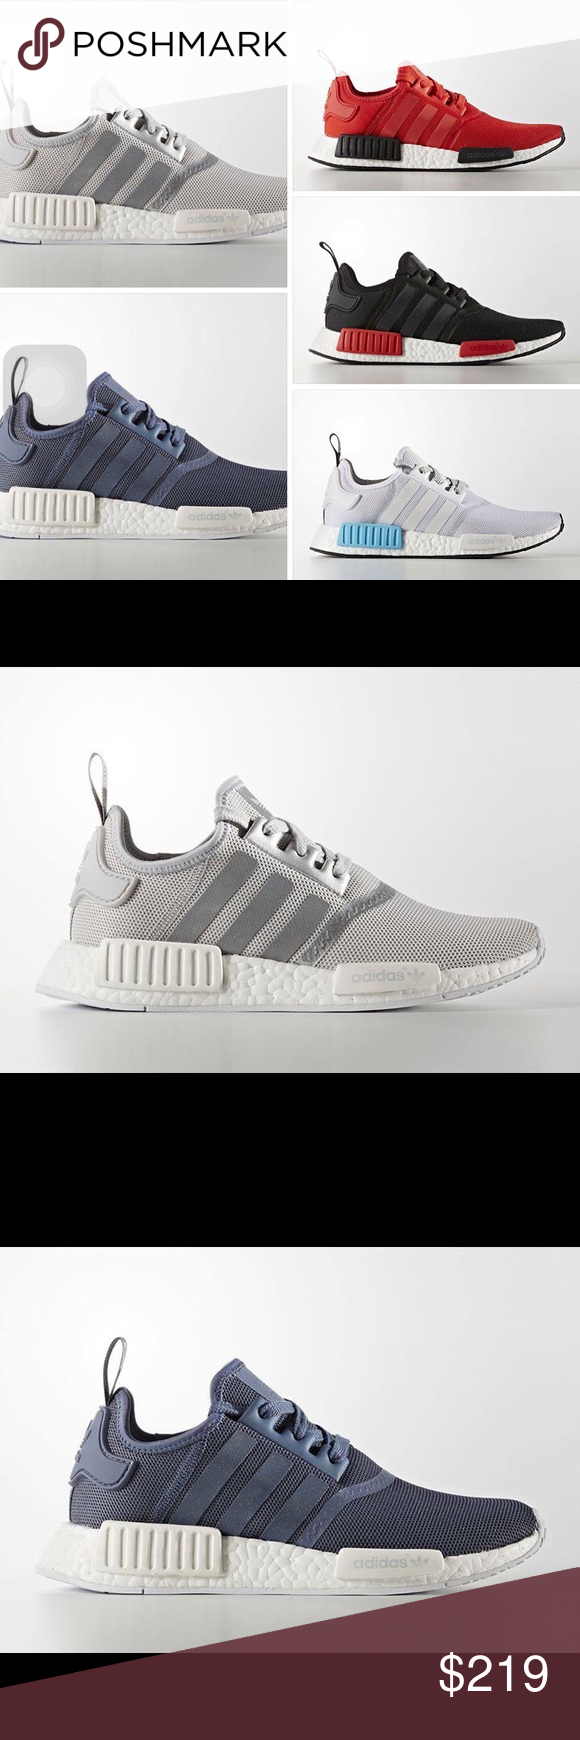 EARLY RELEASE OF ADIDAS NMD R1 | Adidas